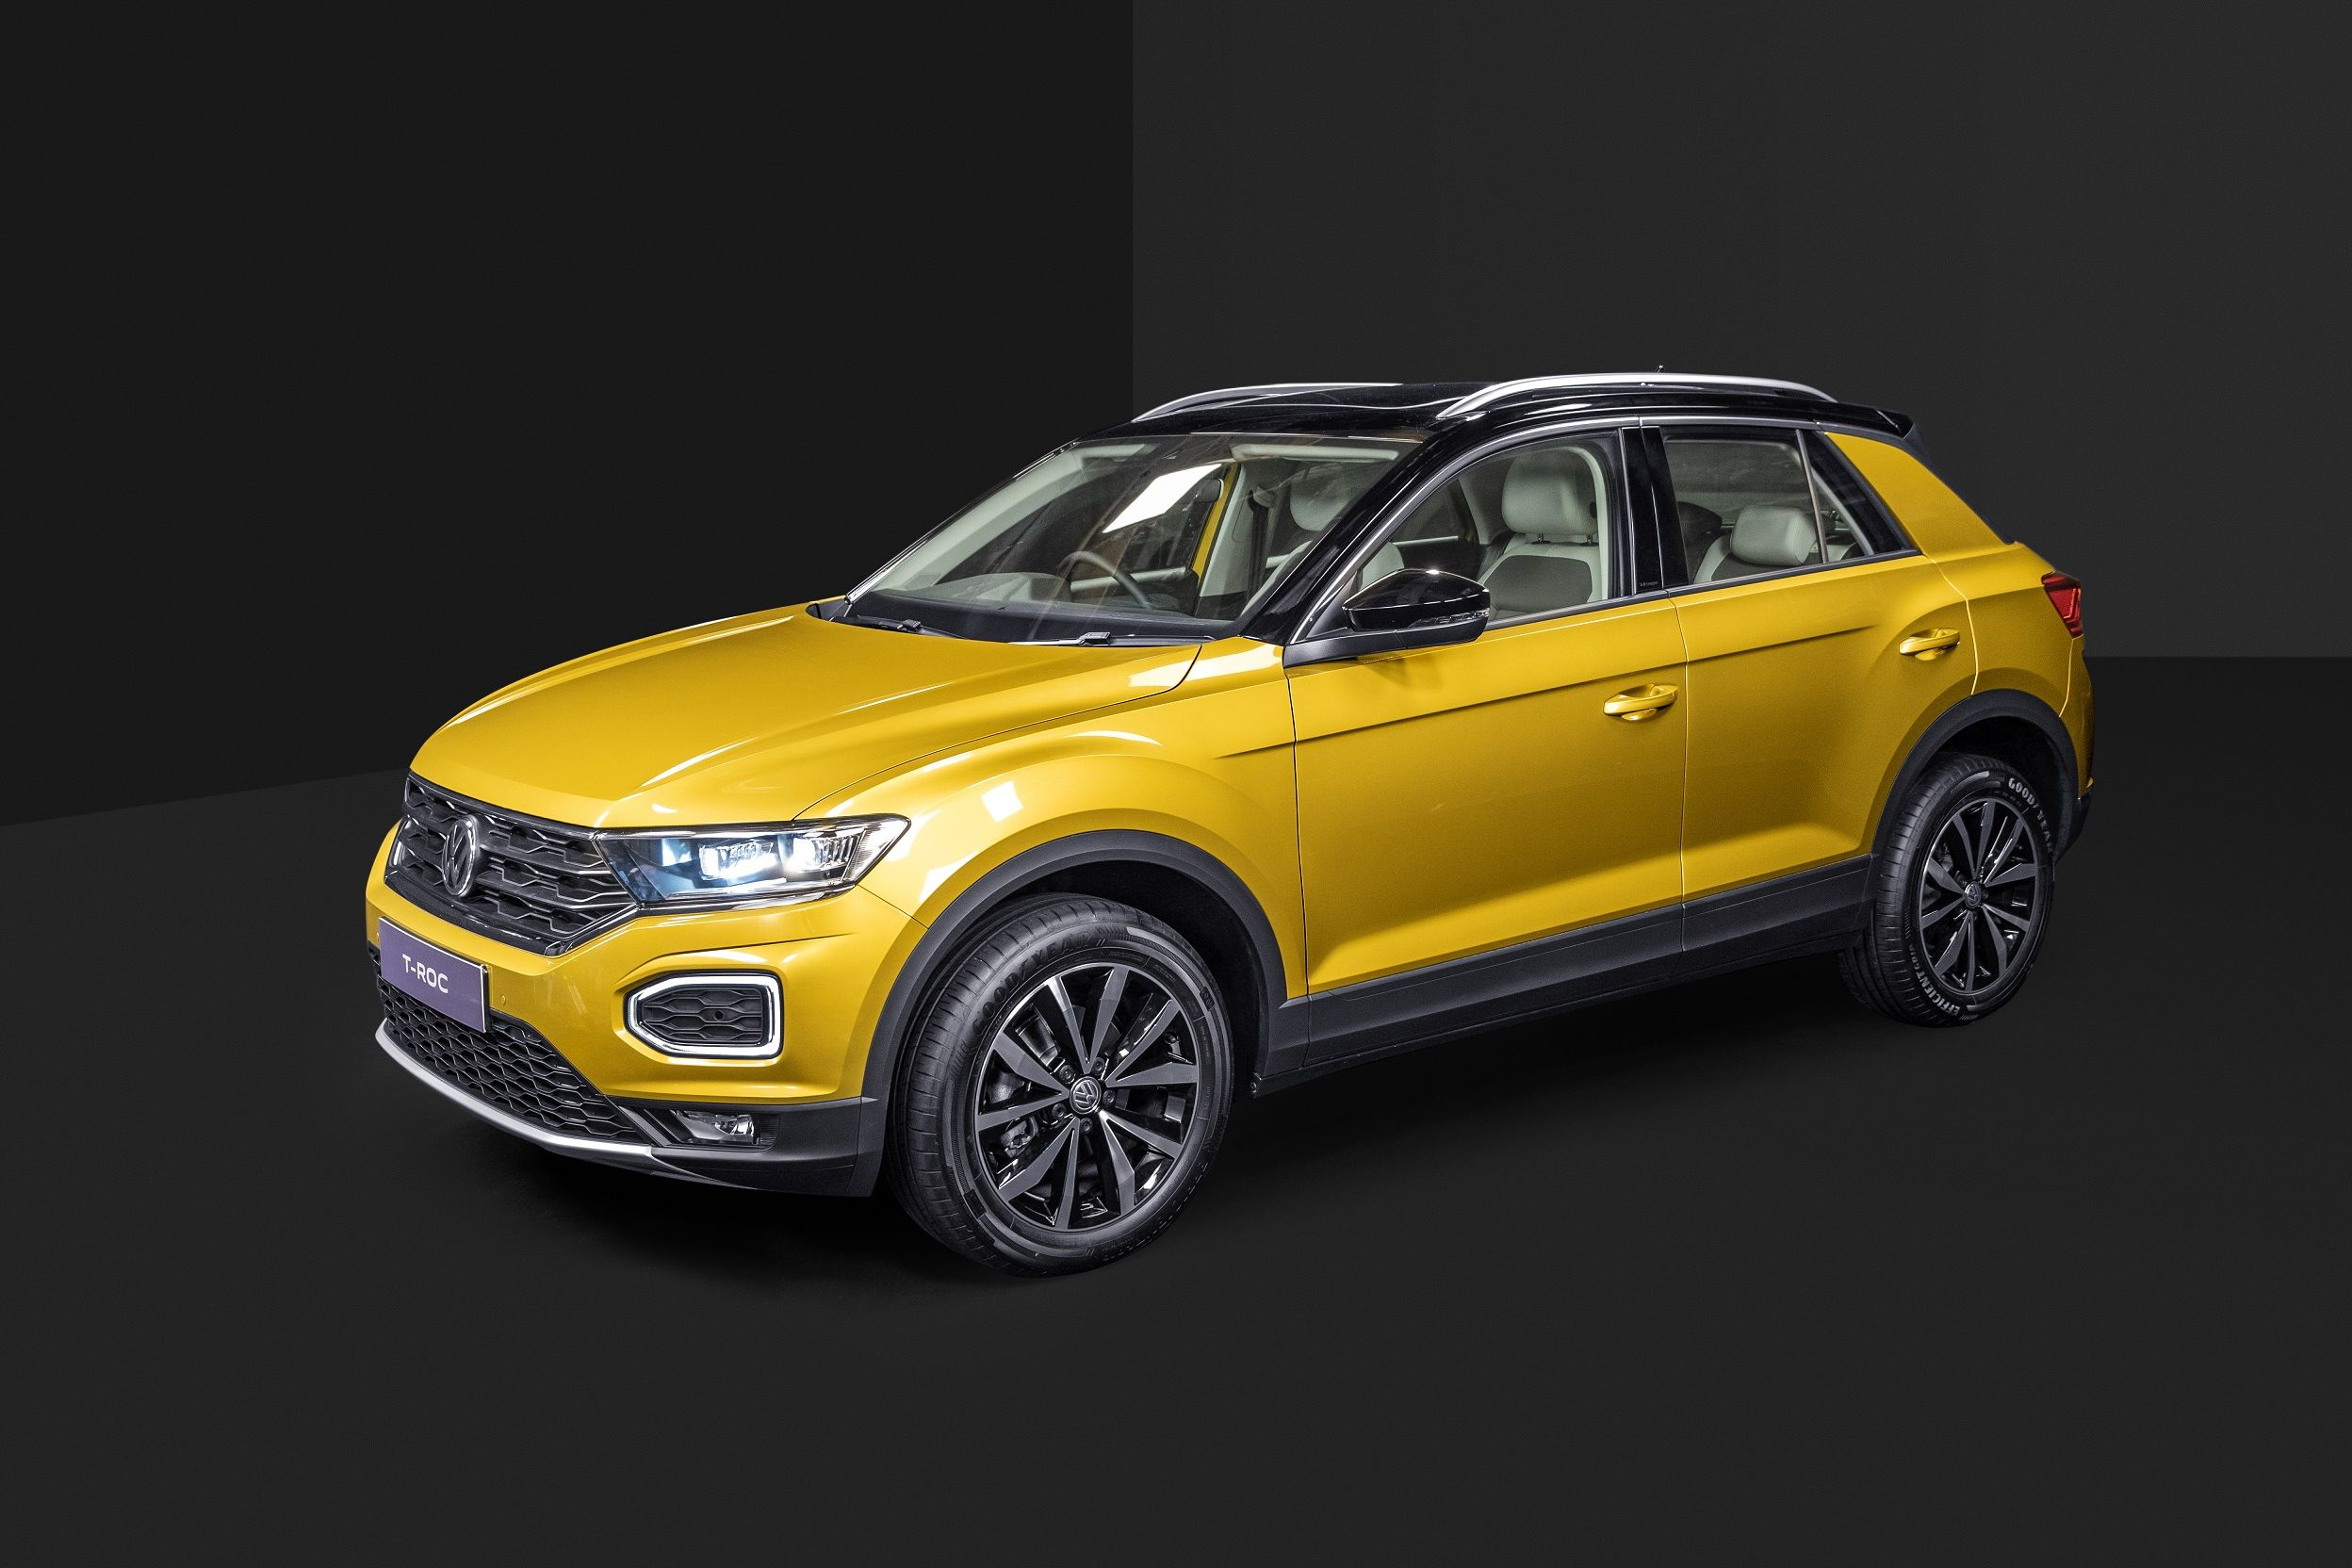 The SUV gets black-coloured exterior mirrors, body-coloured door handles and silver anodised roof rails. The dual-tone roof lends it a sporty character.